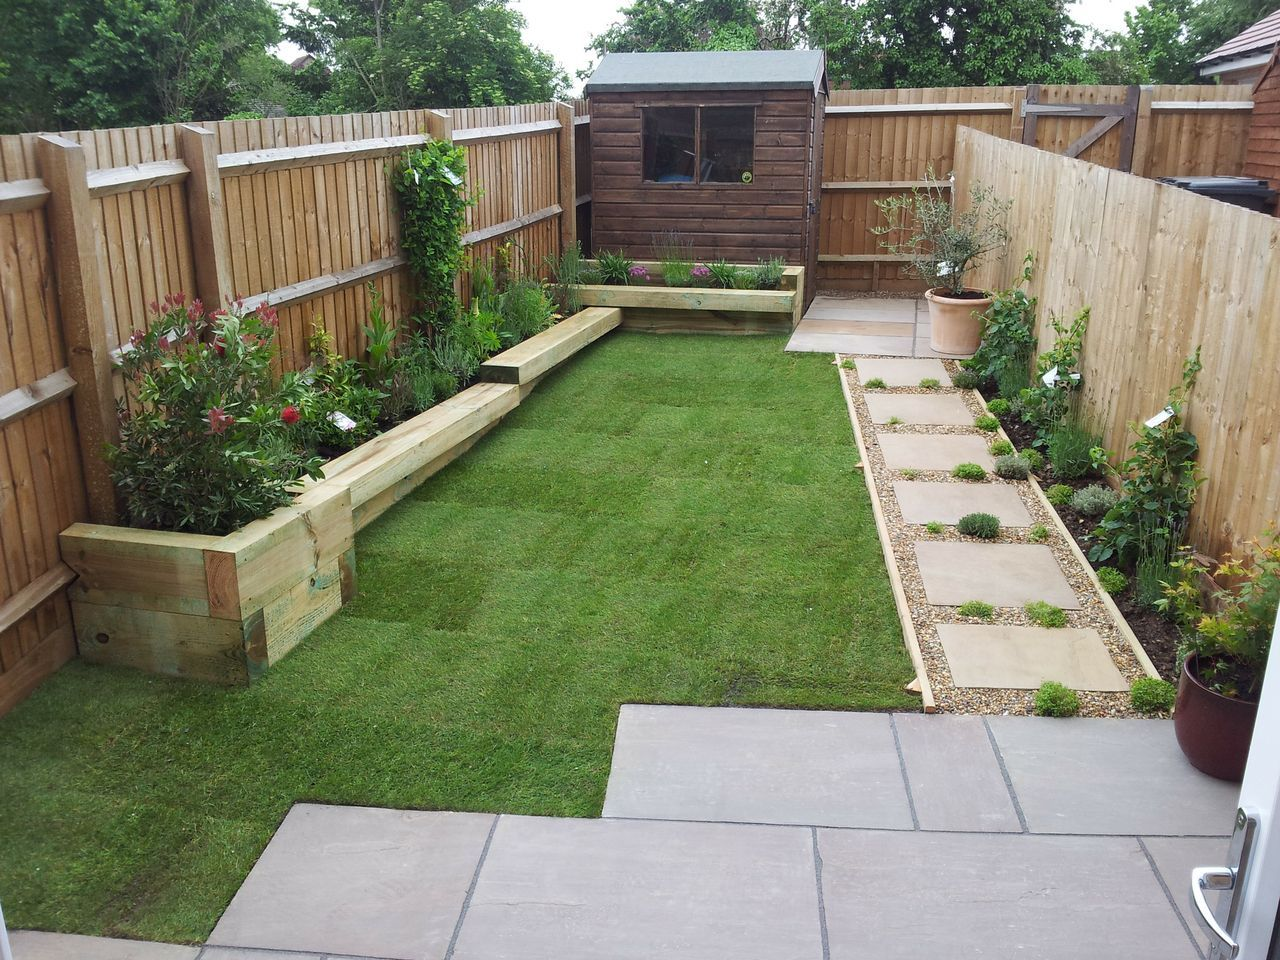 Small garden with raised beds sleeper benches garden for Your garden design